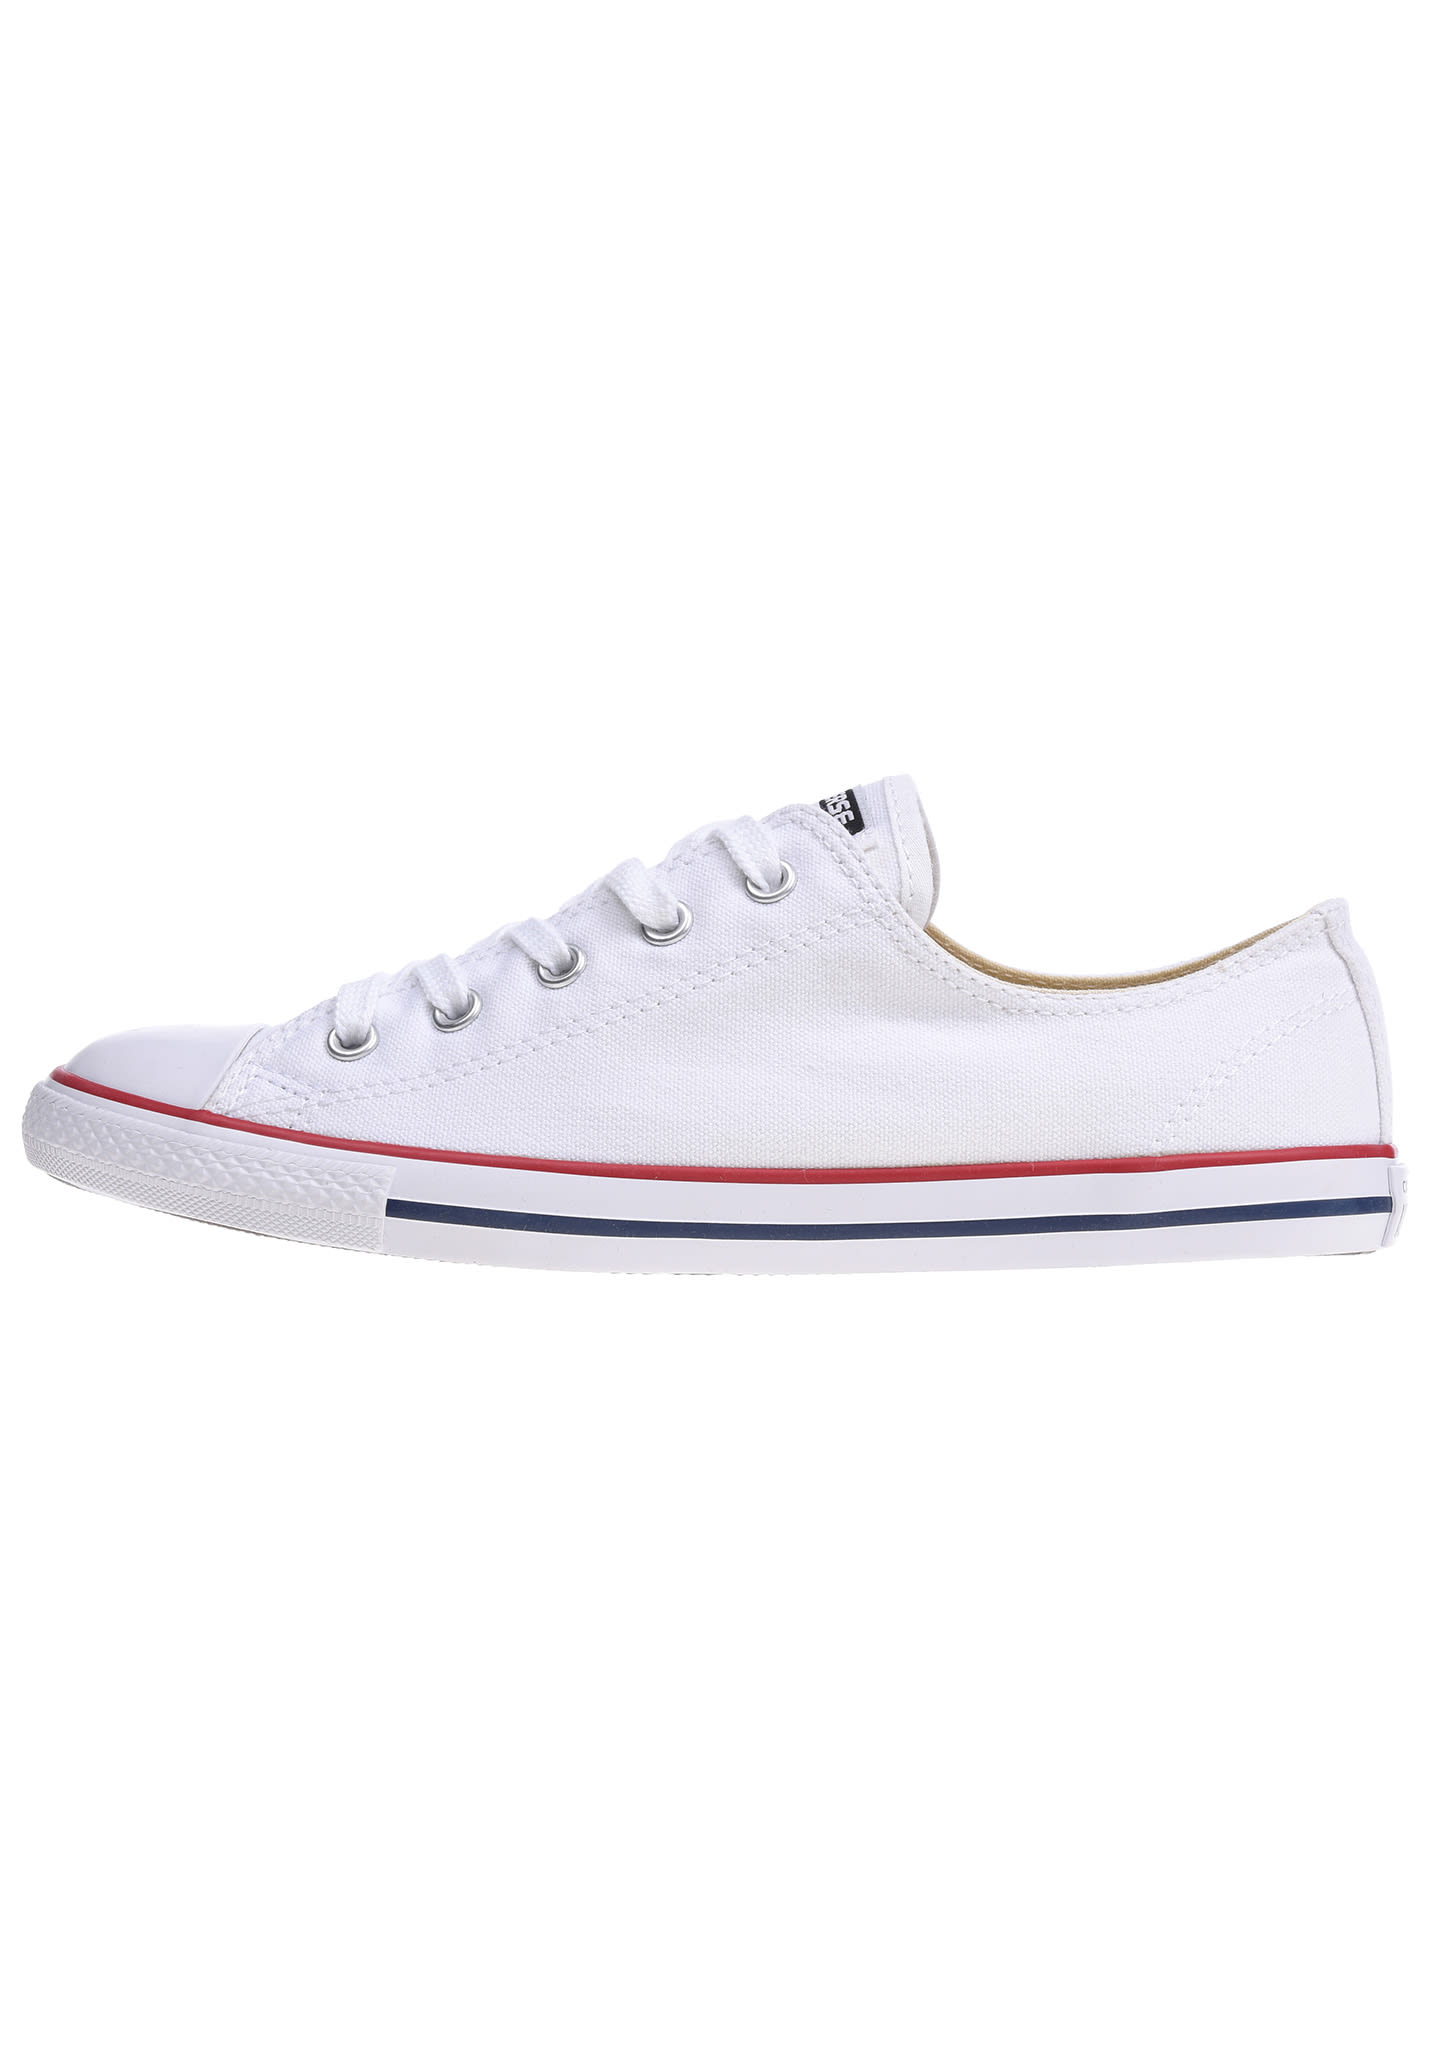 Chaussures Converse Chuck Taylor All Star Dainty ndUWBq